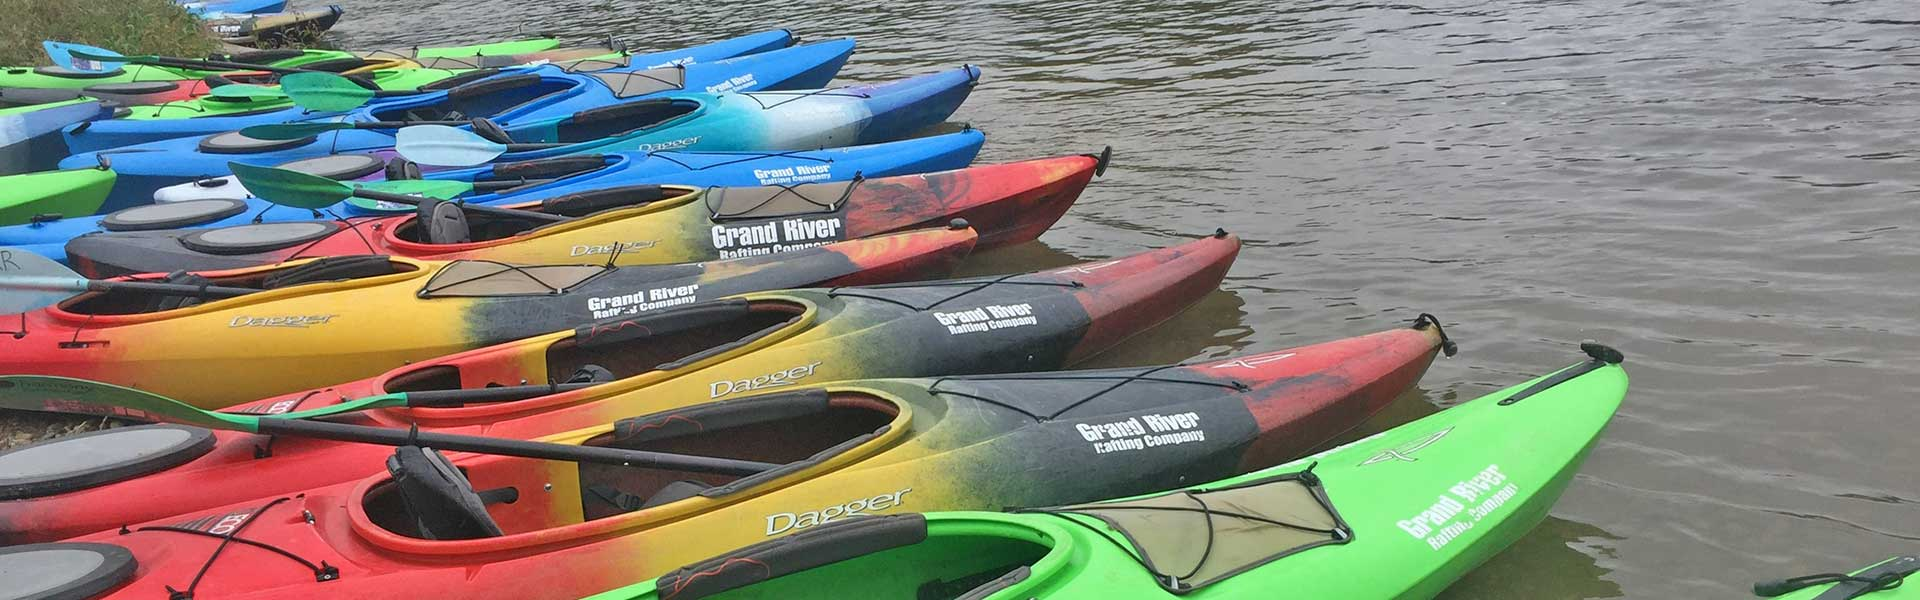 Kayak Rentals on the Grand River